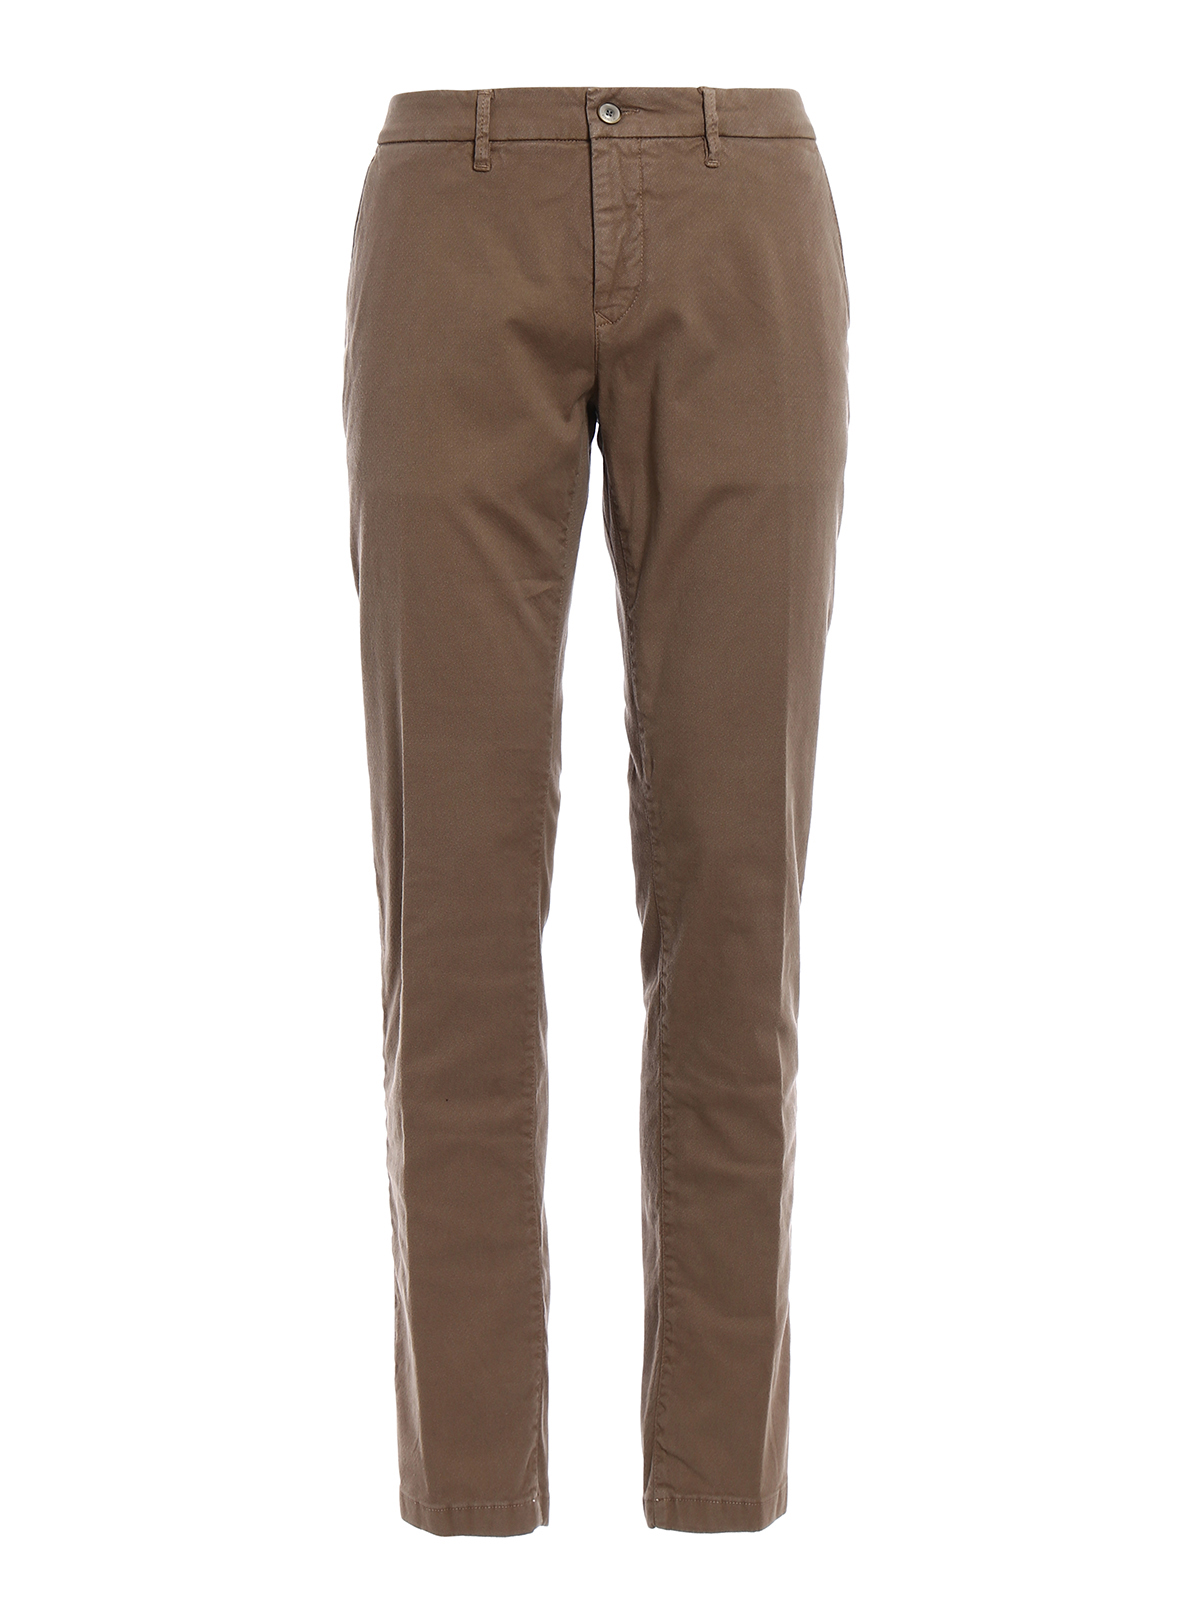 Gap women's trousers favorite khaki size for r low-rise relaxed fit pants New with tags, tan, khaki trouser pants, 2 button pockets in back, 2 front side pockets and one little pocket in .